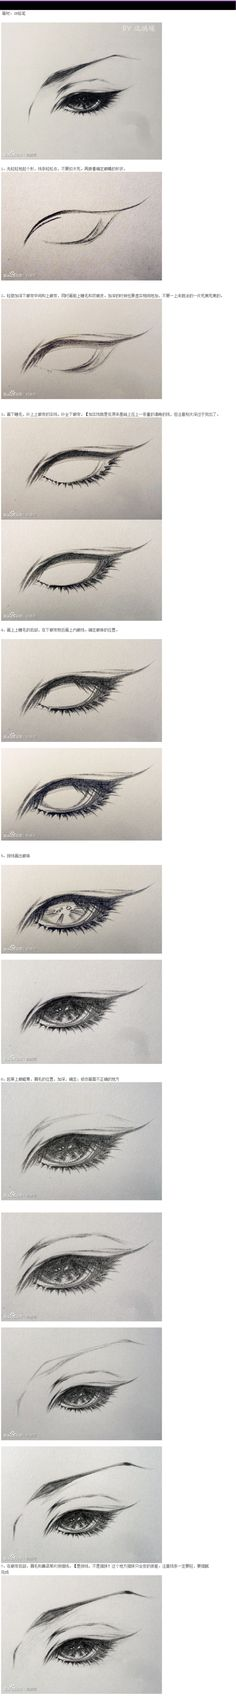 New drawing sketches animation anime eyes Ideas Eye Drawing Tutorials, Drawing Techniques, Drawing Tips, Drawing Reference, Art Tutorials, Drawing Sketches, Cool Drawings, Manga Drawing, Drawing Ideas